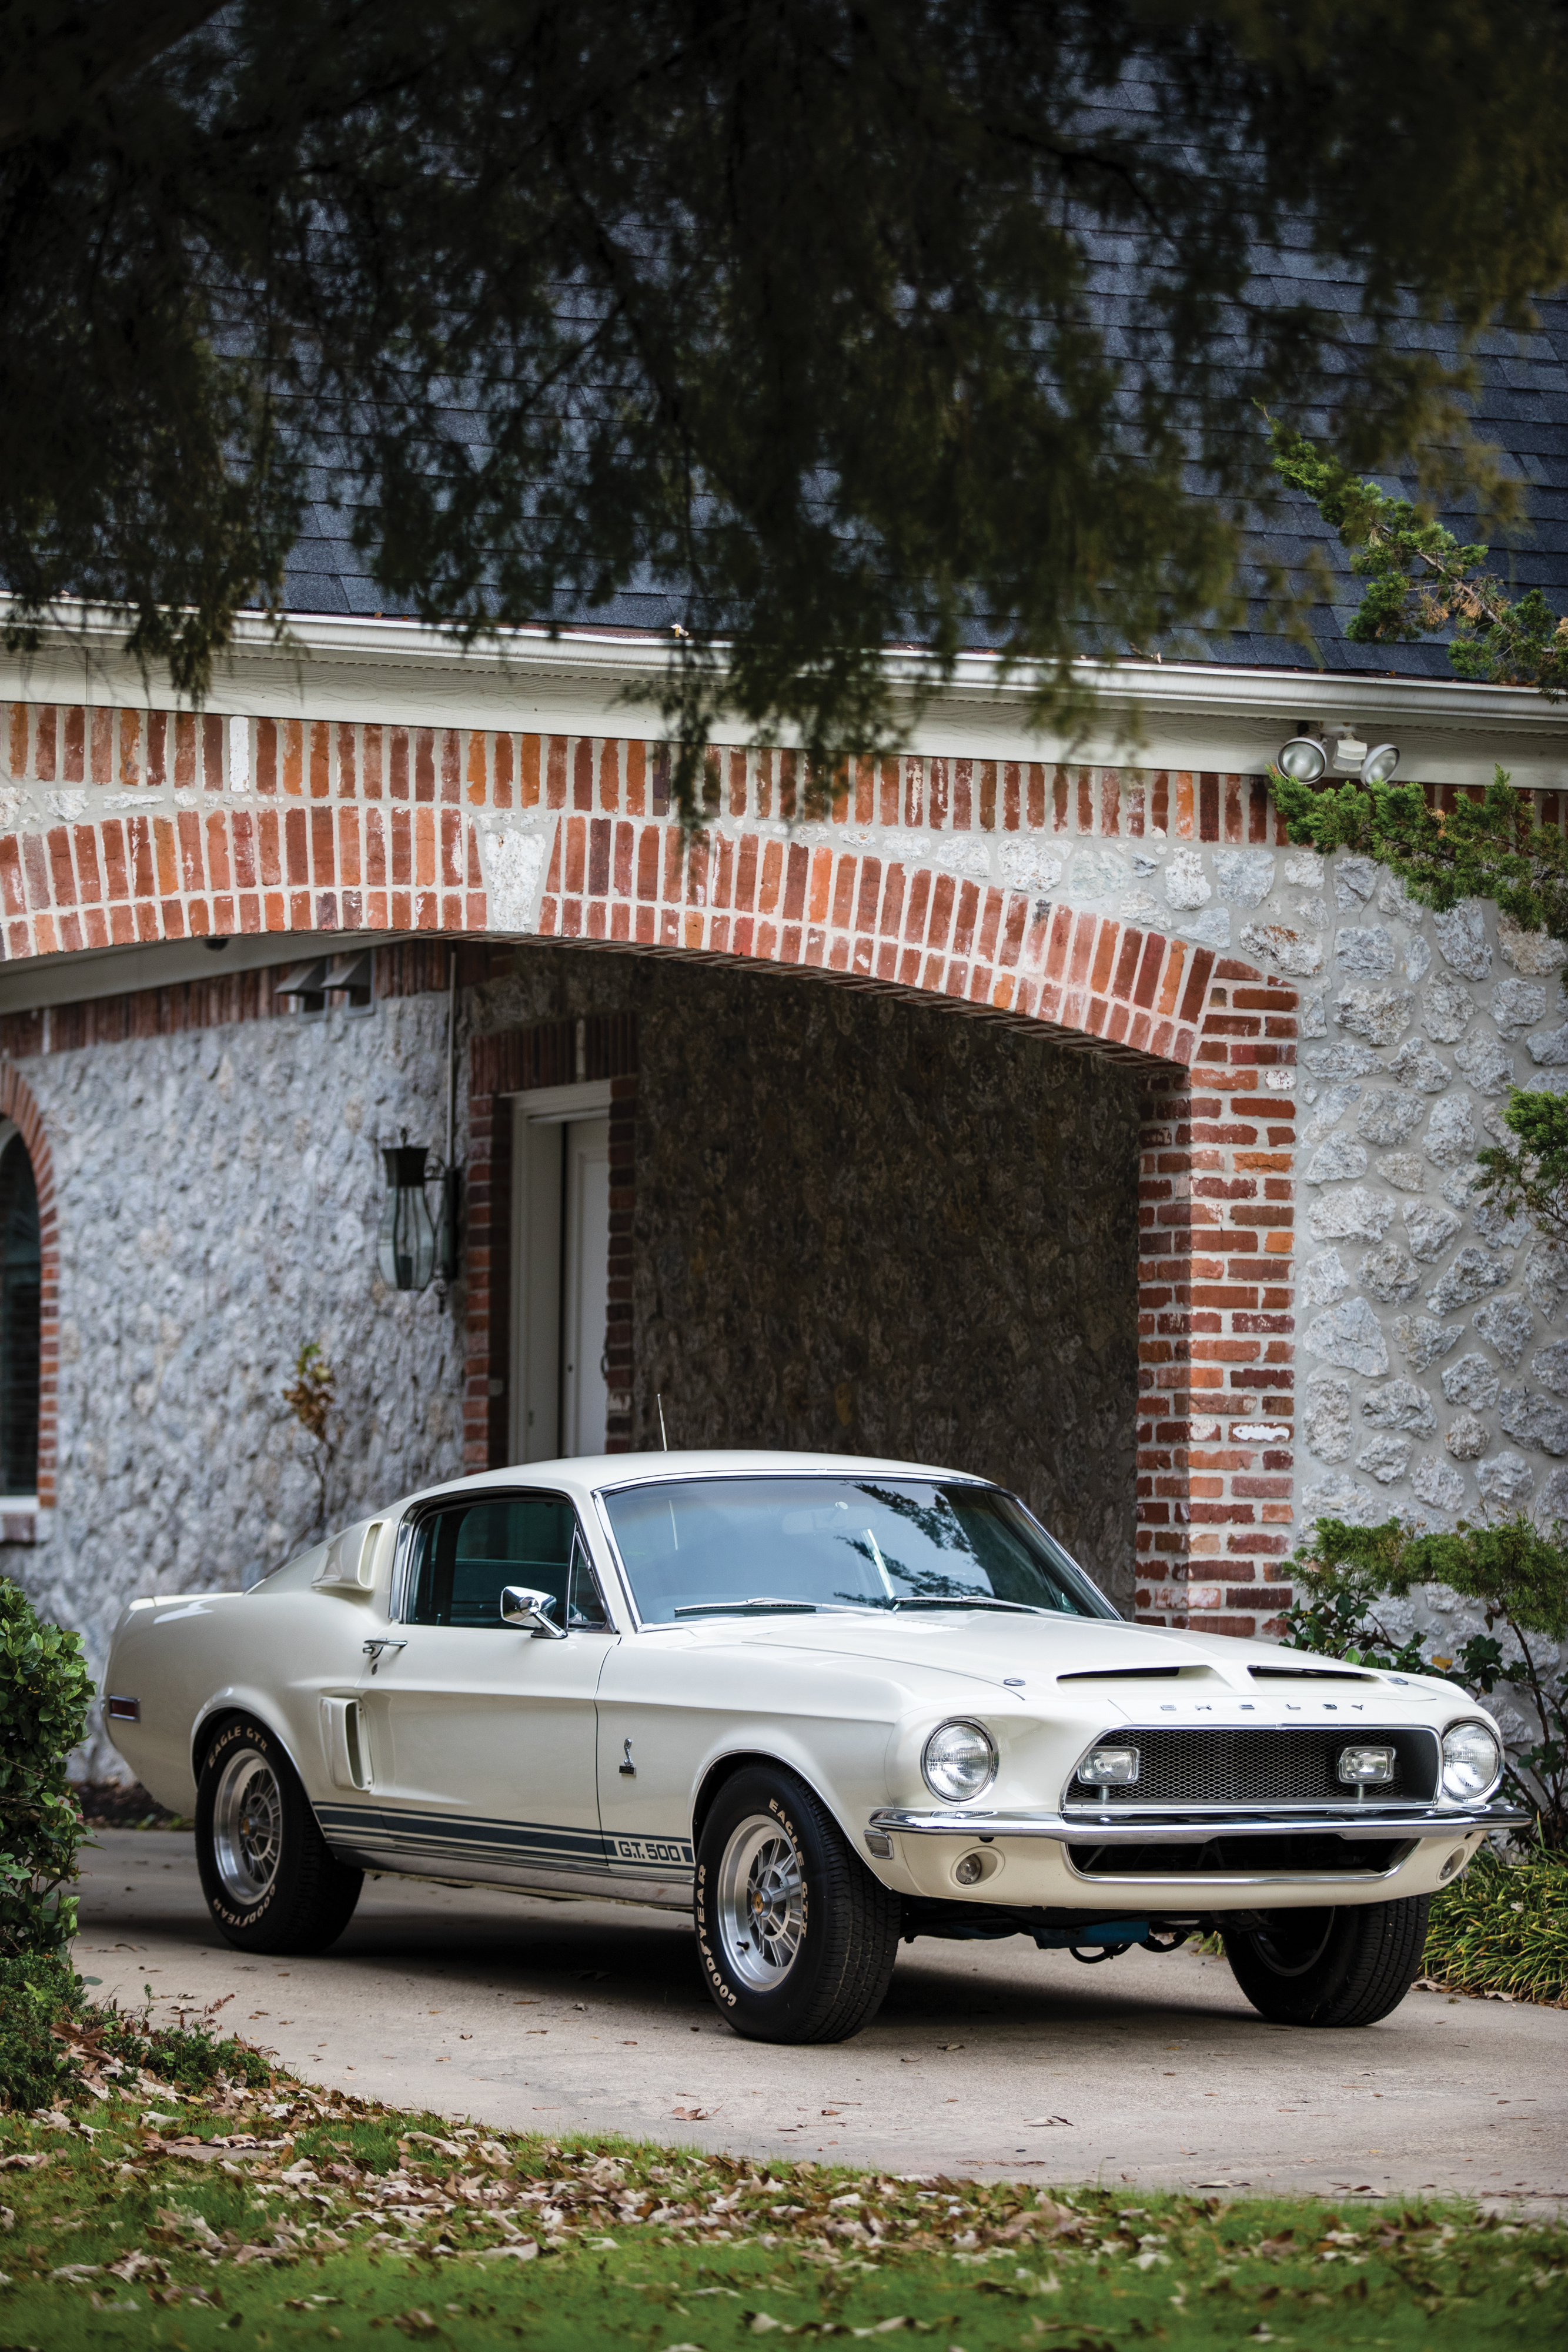 1968 Shelby Gt500 Values Hagerty Valuation Tool